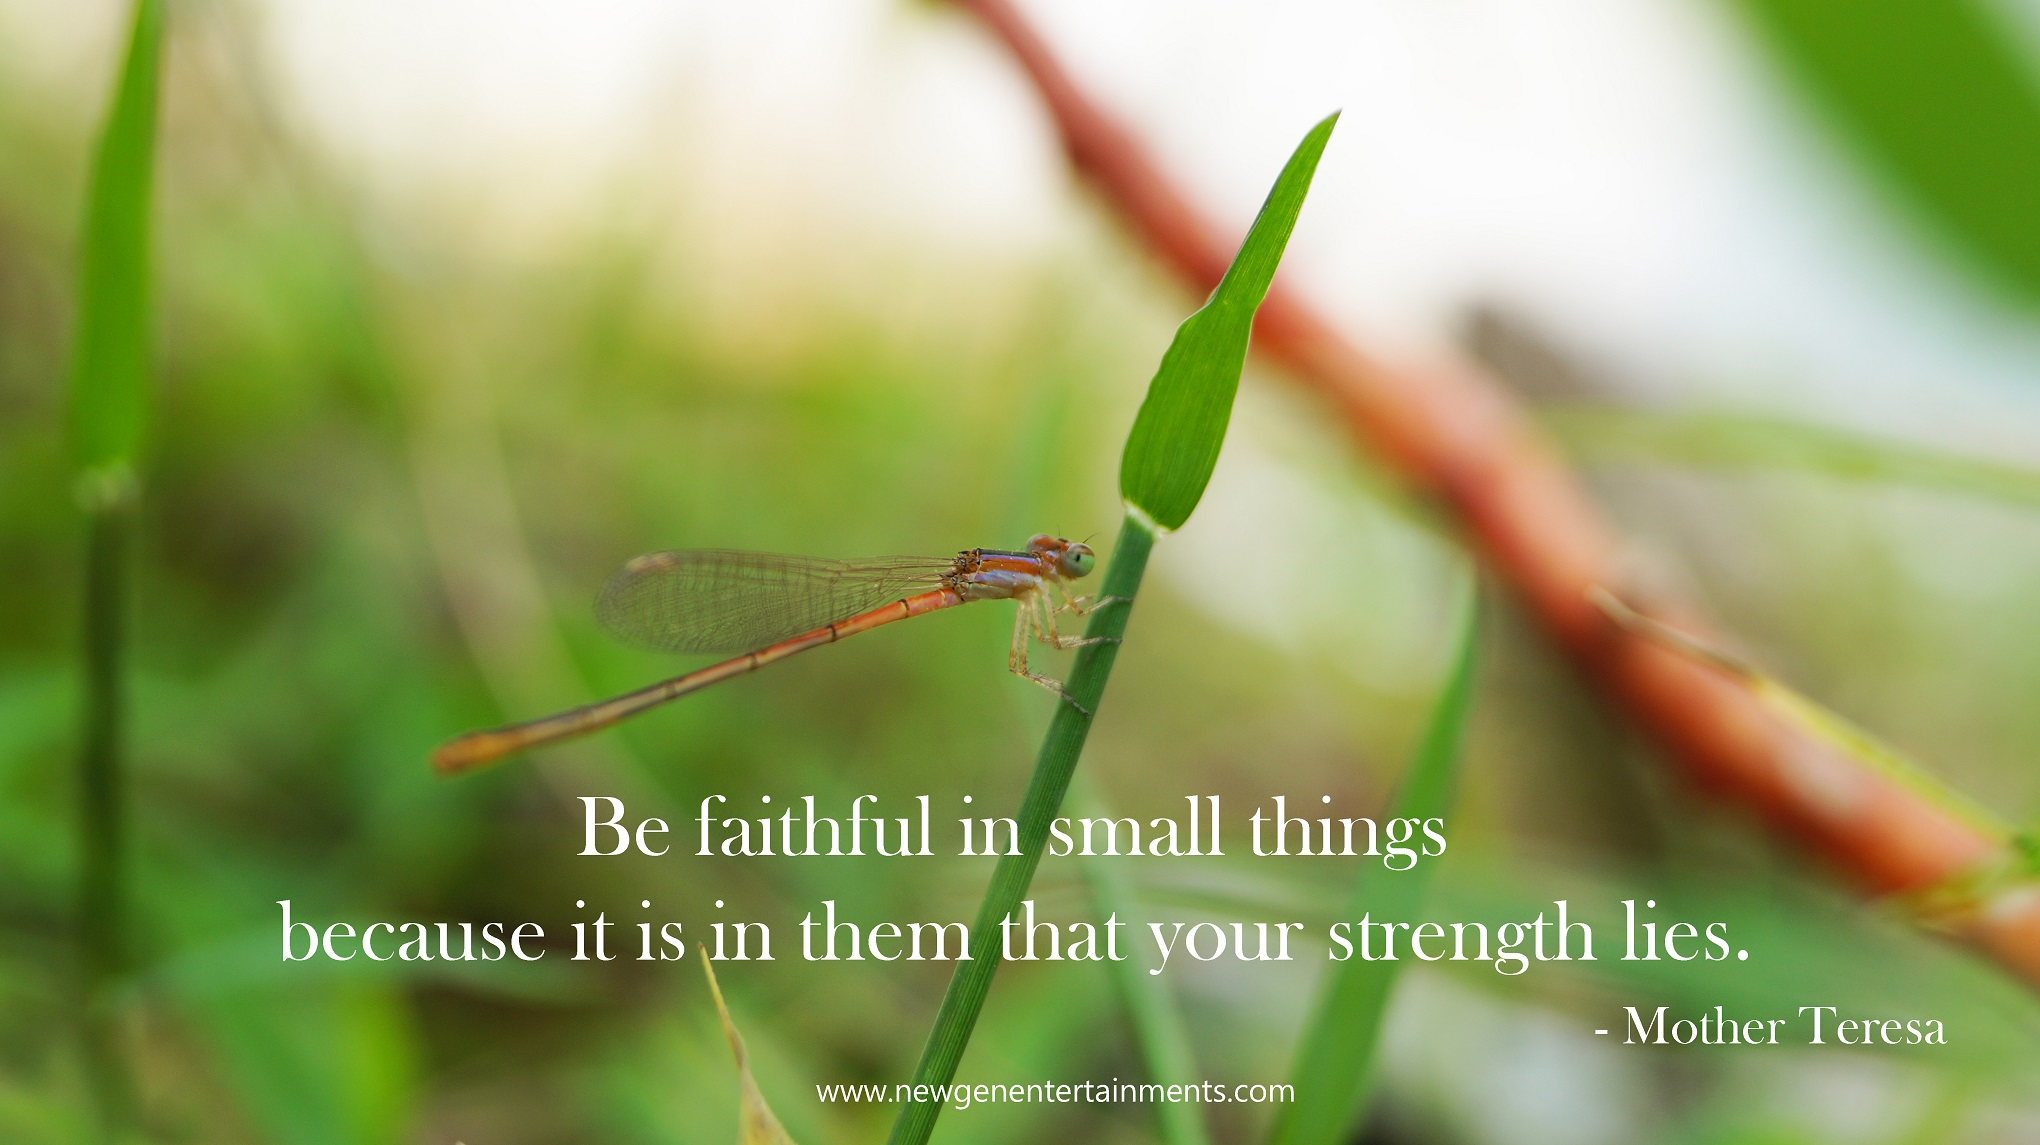 Be faithful in small things because it is in them that your strength lies